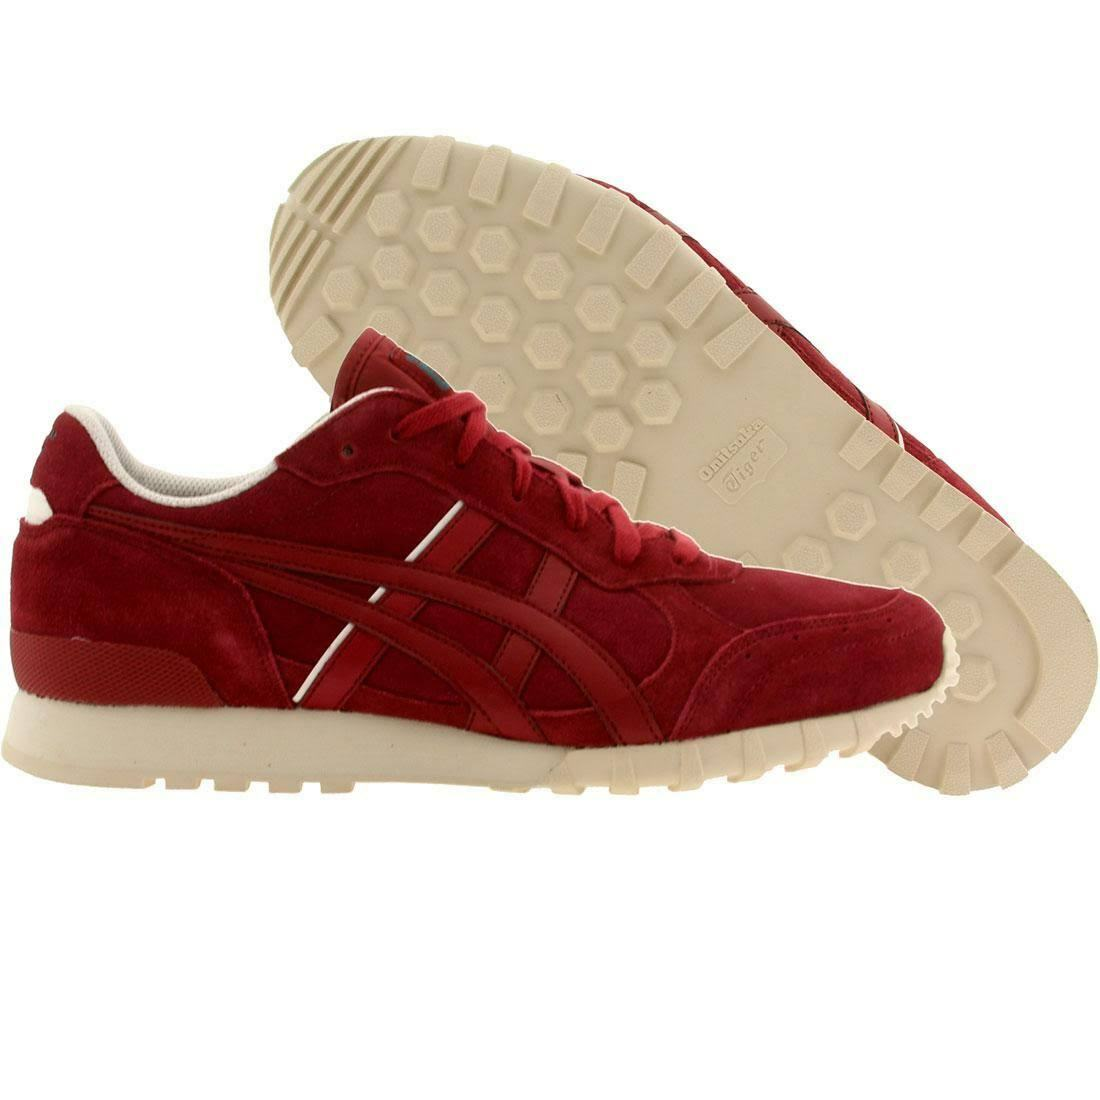 ONITSUKA TIGER D3T1L.2525 COLORADO 85 Mn's (M) Burgundy Suede Lifestyle Shoes